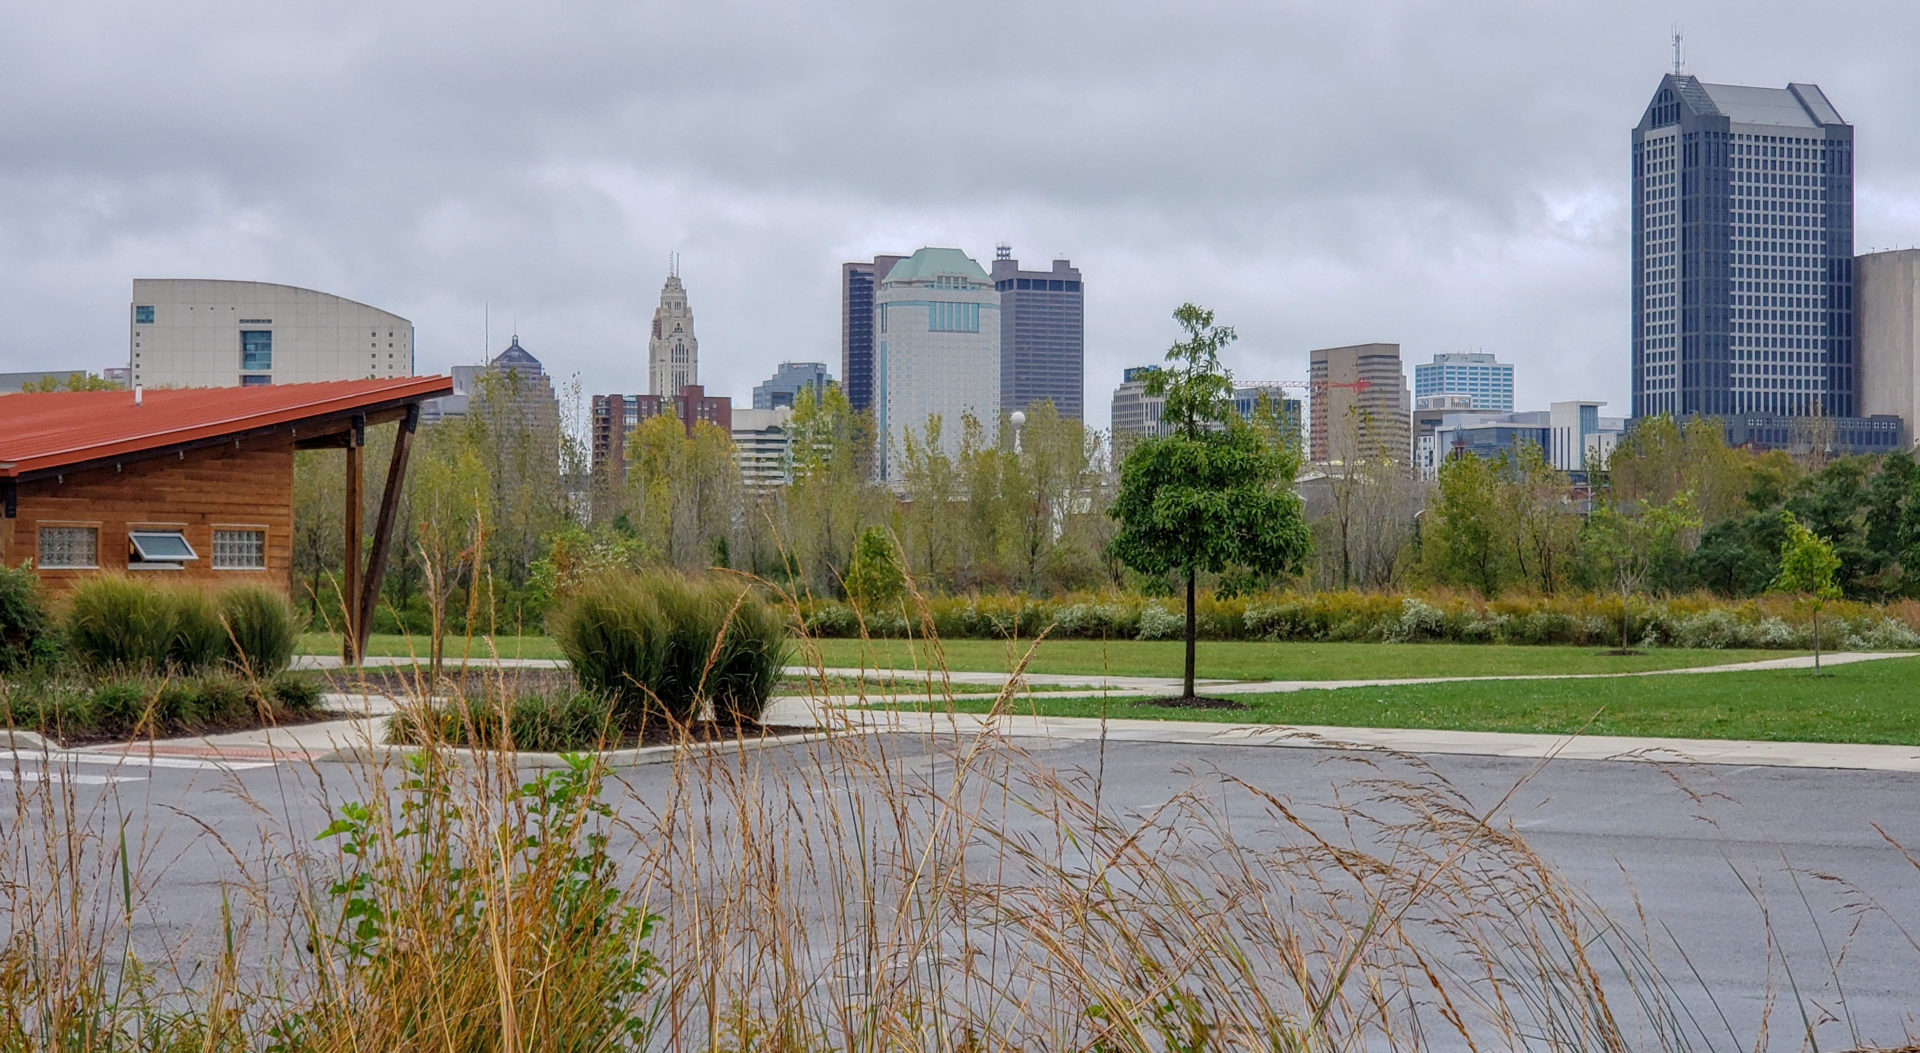 Scioto Park in Columbus Ohio 2018 Oct 10 – In Photos